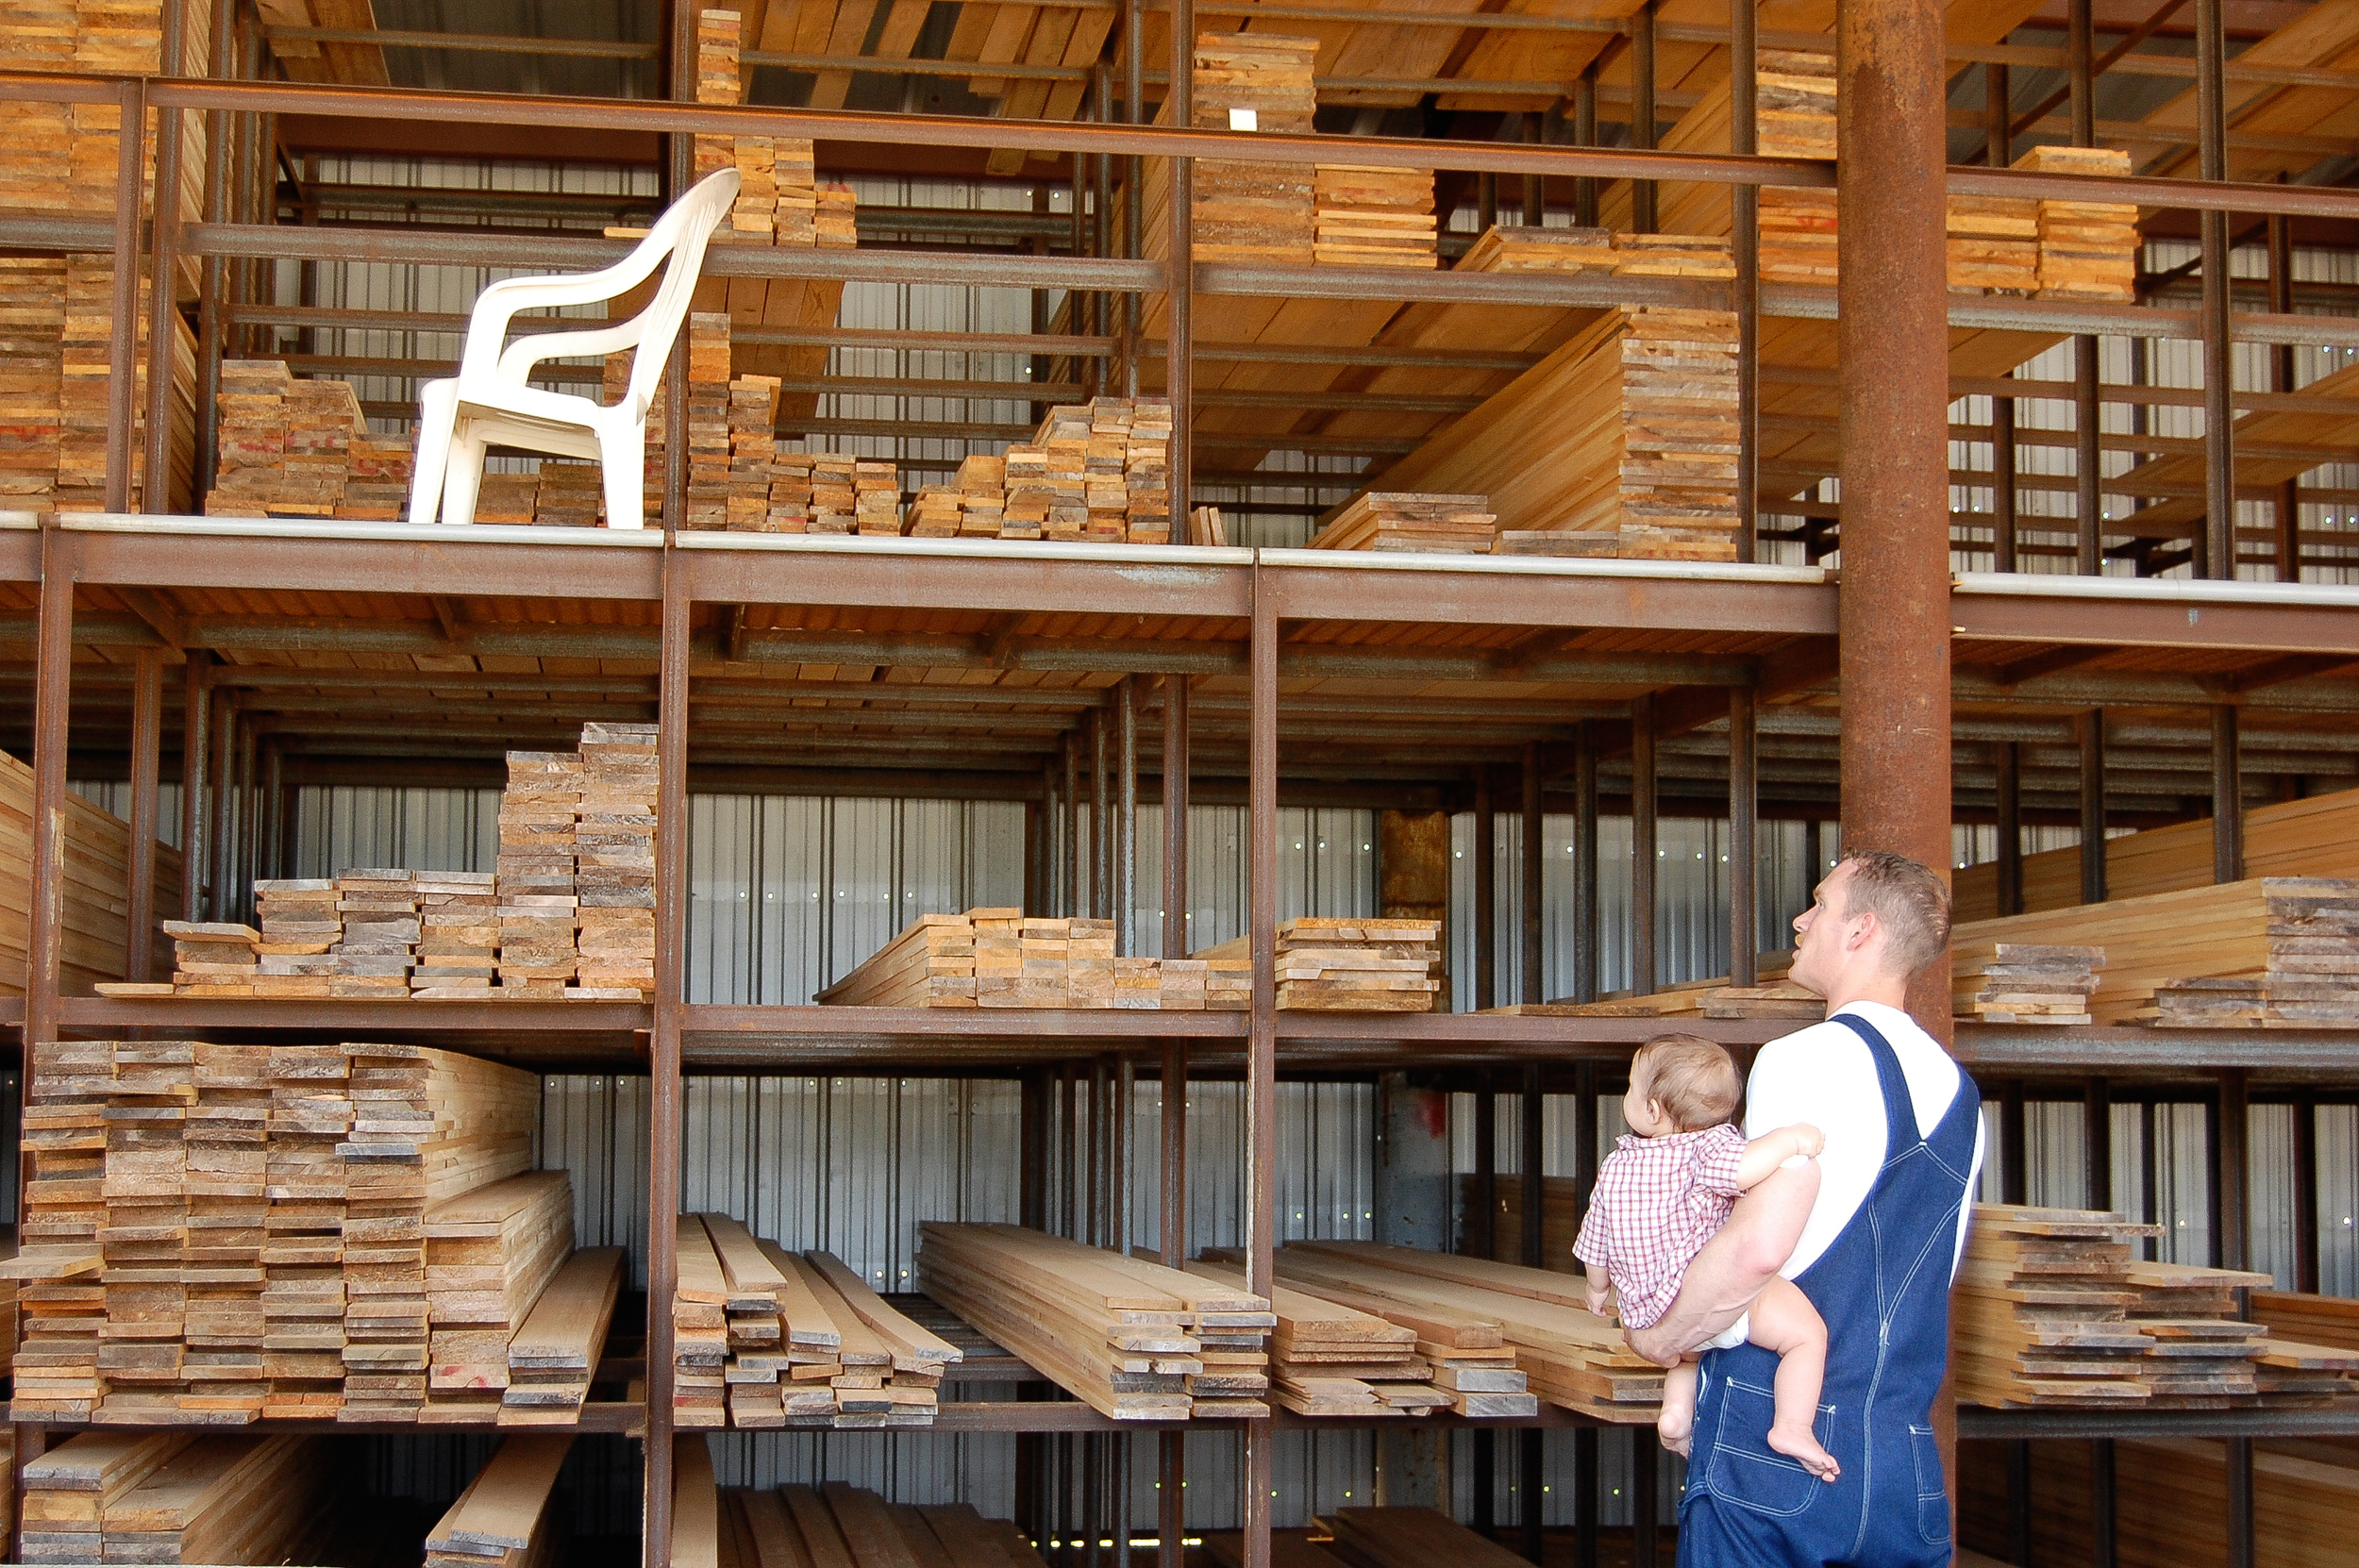 2008 - 11-month-old Abraham watches as Daddy chooses wood at the lumber mill